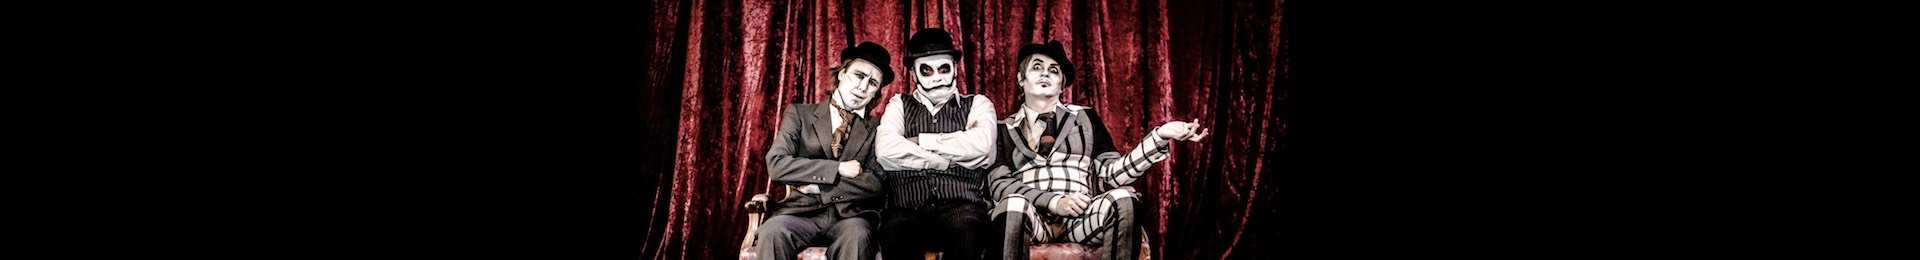 The Tiger Lillies: Edgar Allan Poe's Haunted Palace banner image